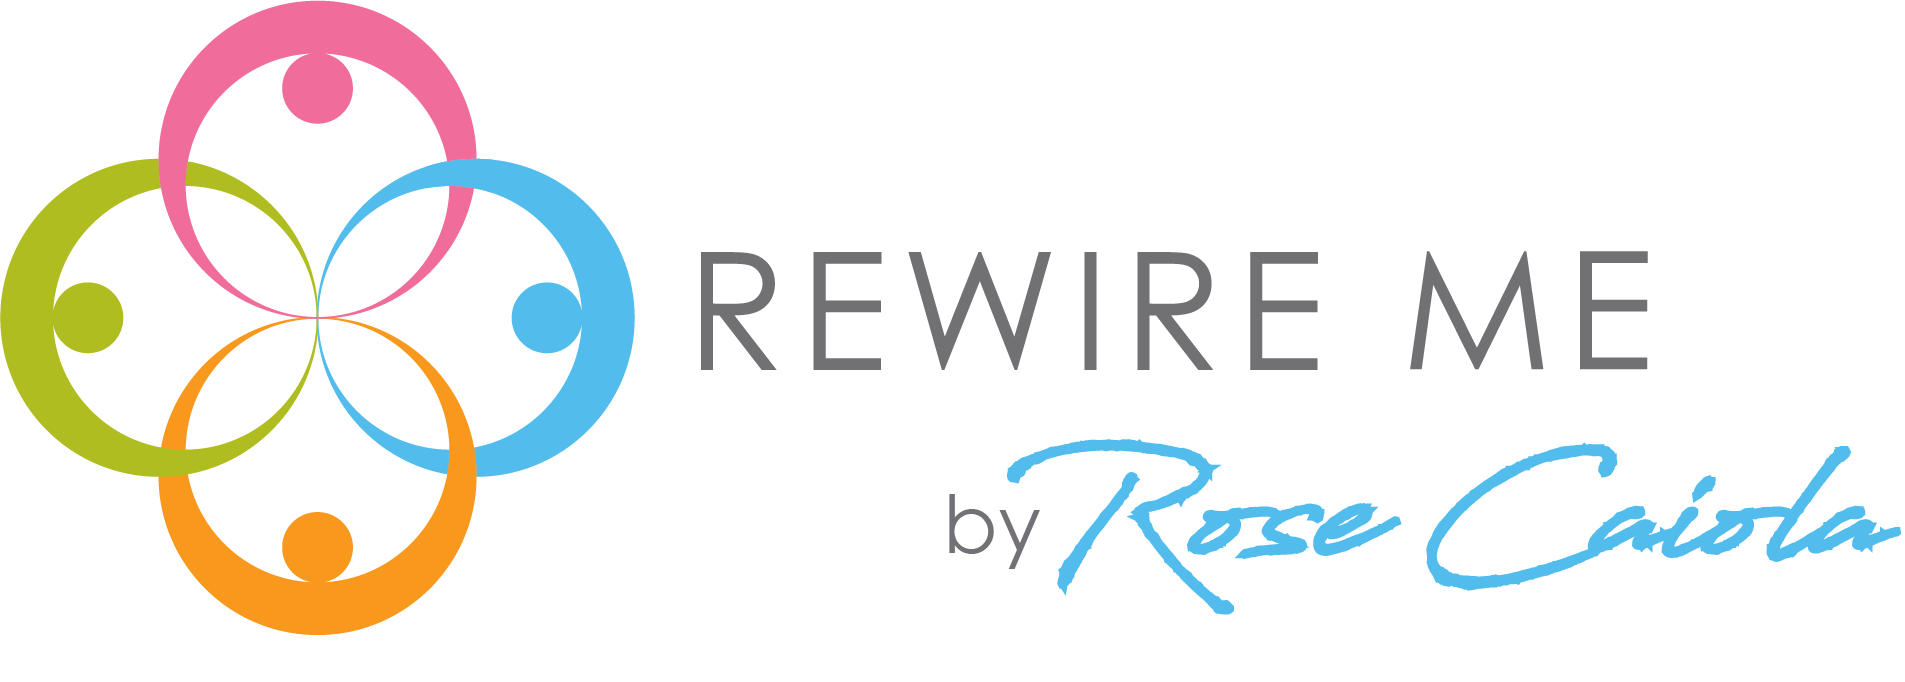 Rewire Me by Rose Caiola - Your Destination for Personal Transformation